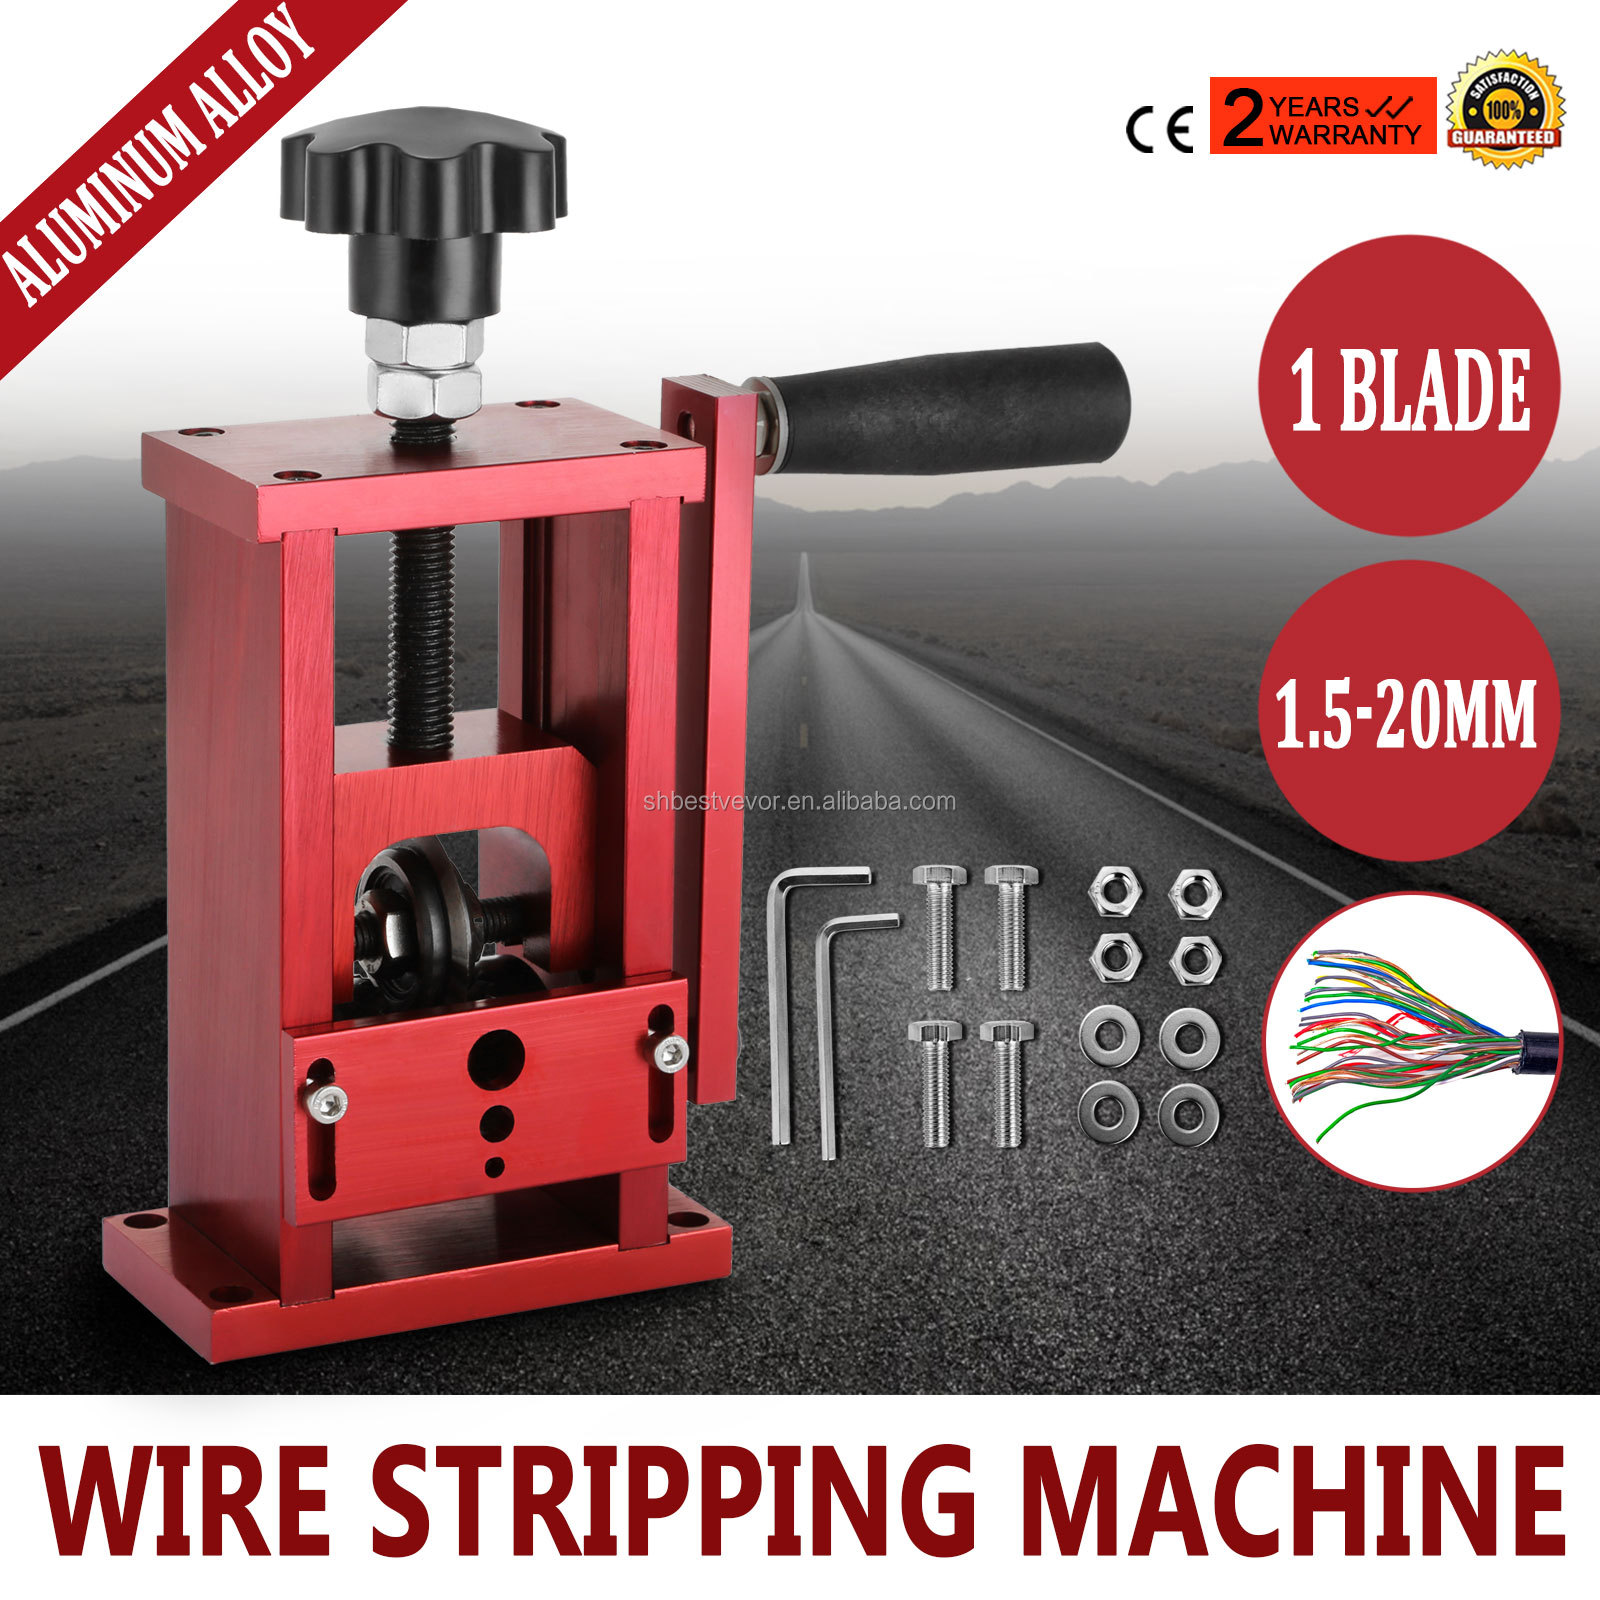 1.5-20mm Copper Wire Stripping Machine Cable Stripper Scrap Recycle ...